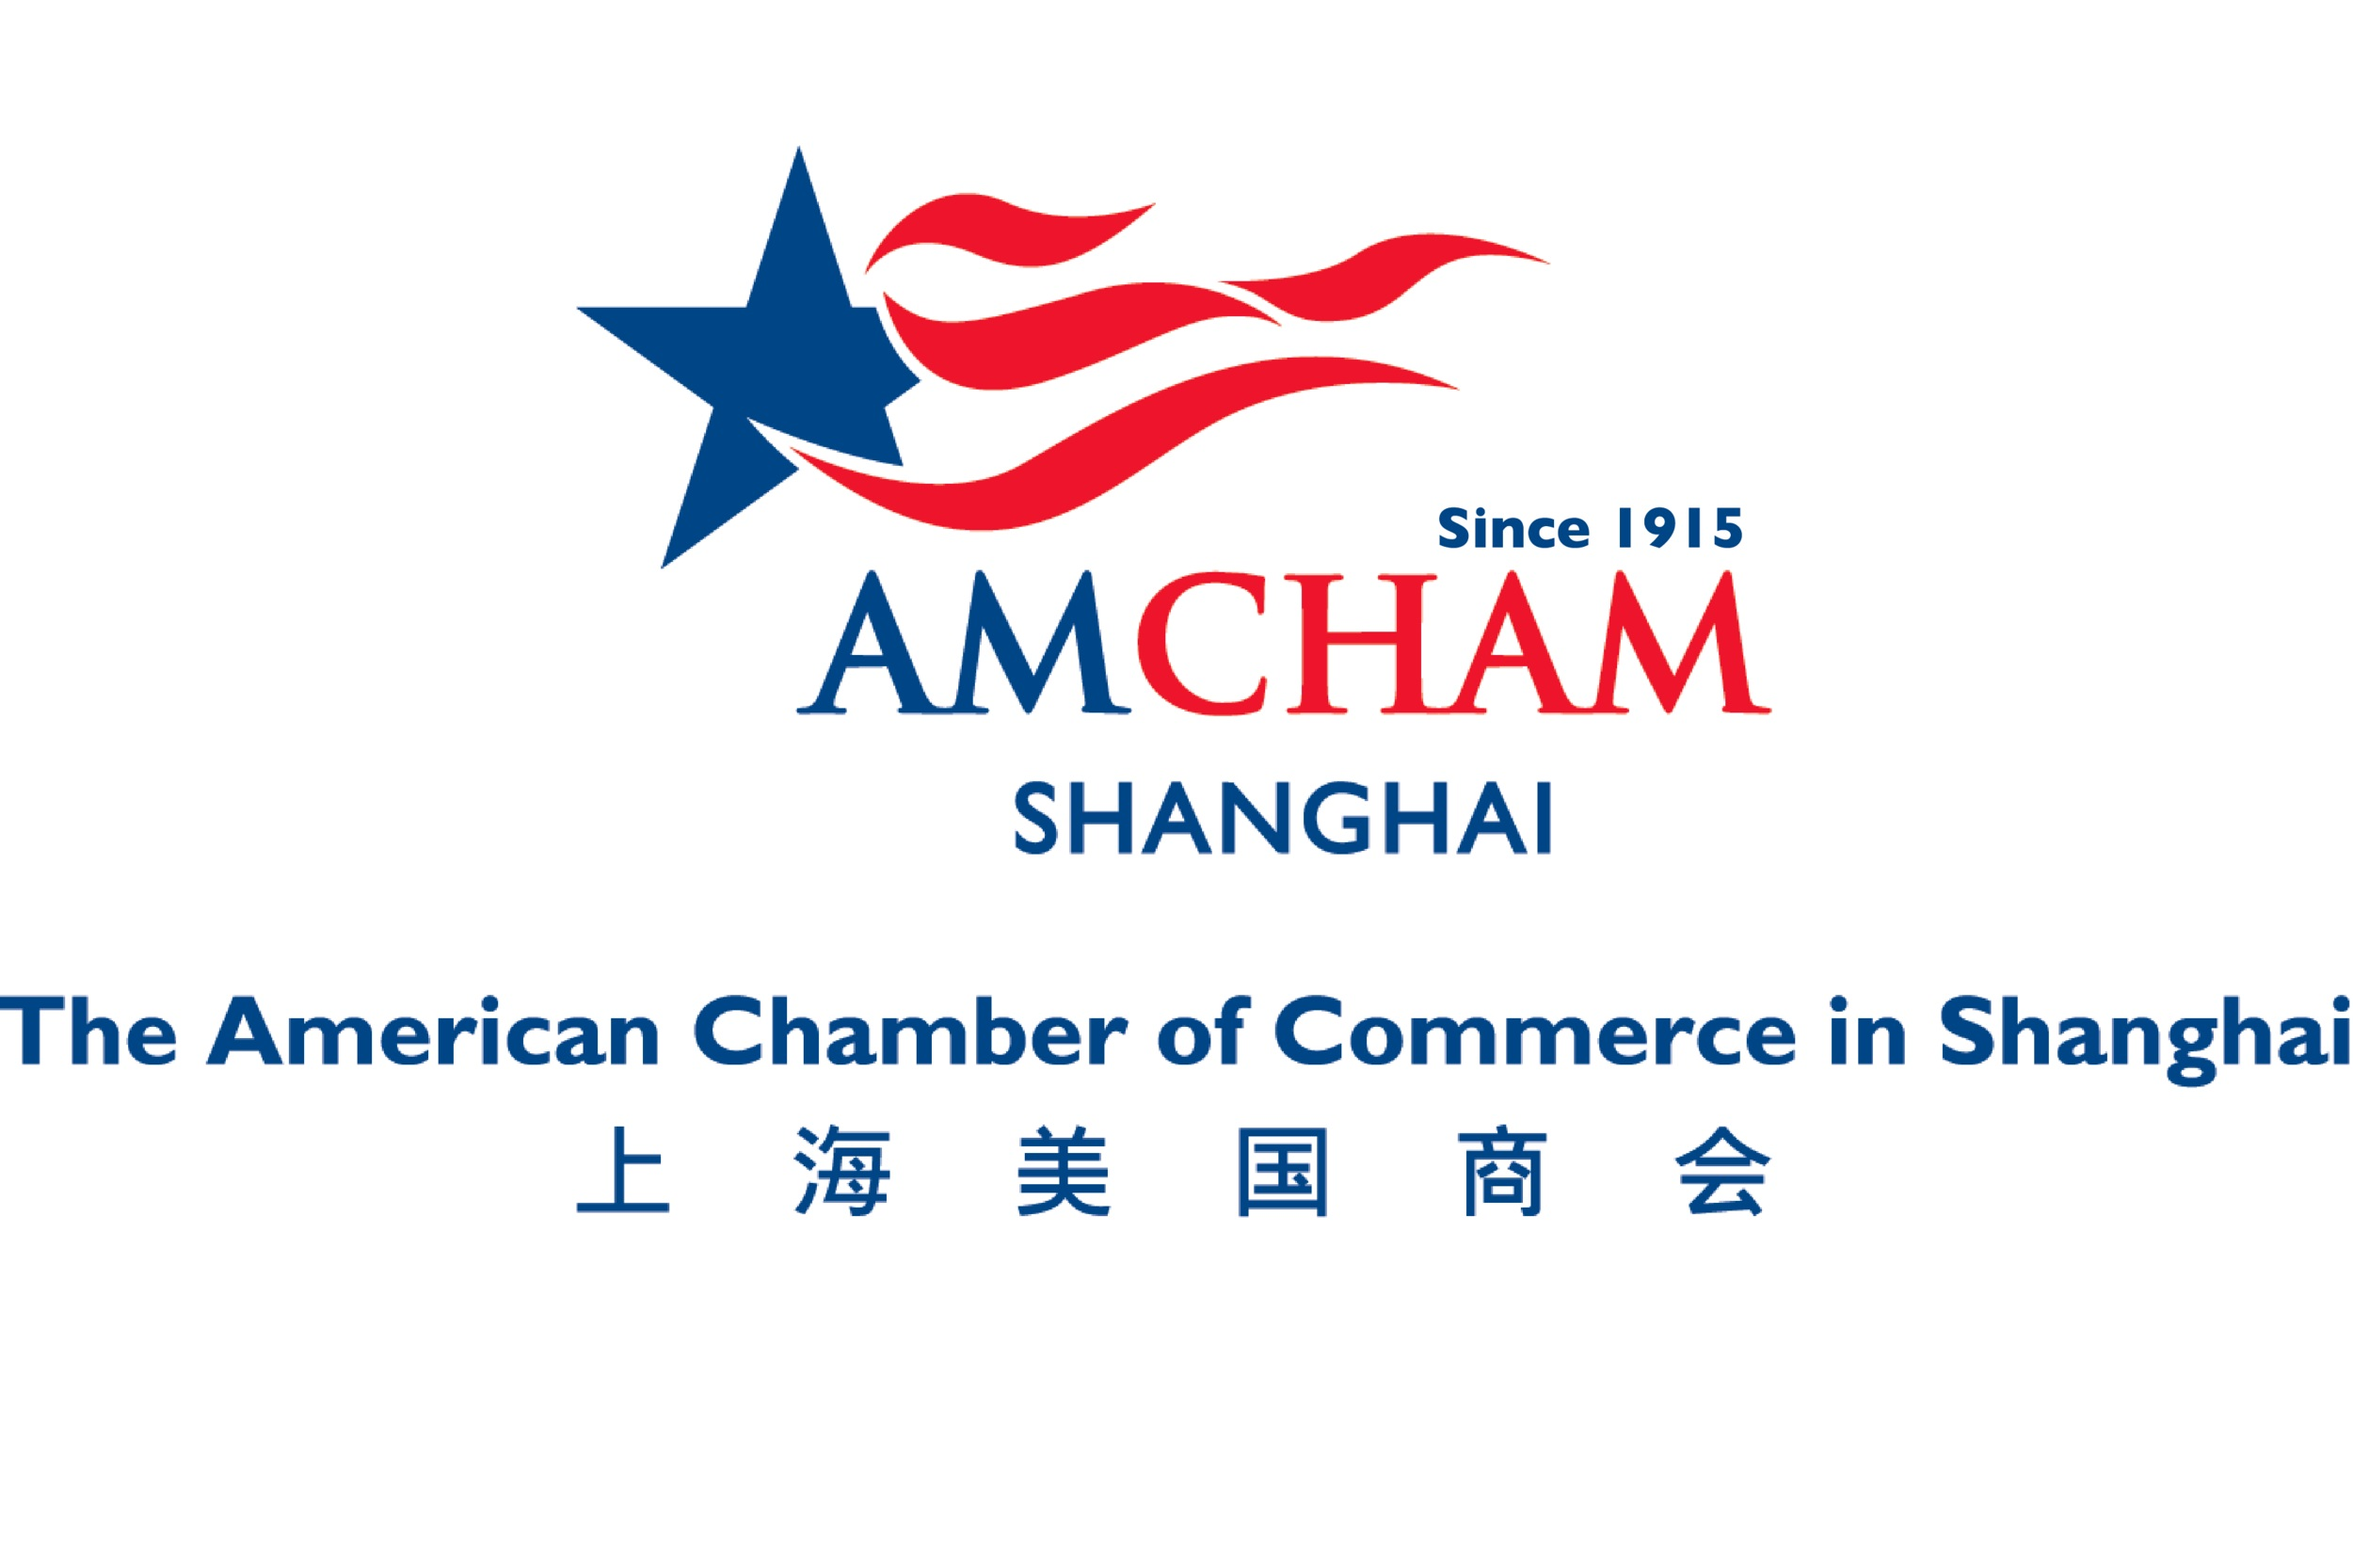 AmCham+Shanghai+logo+1915+white+background-01+-+Copy.jpg